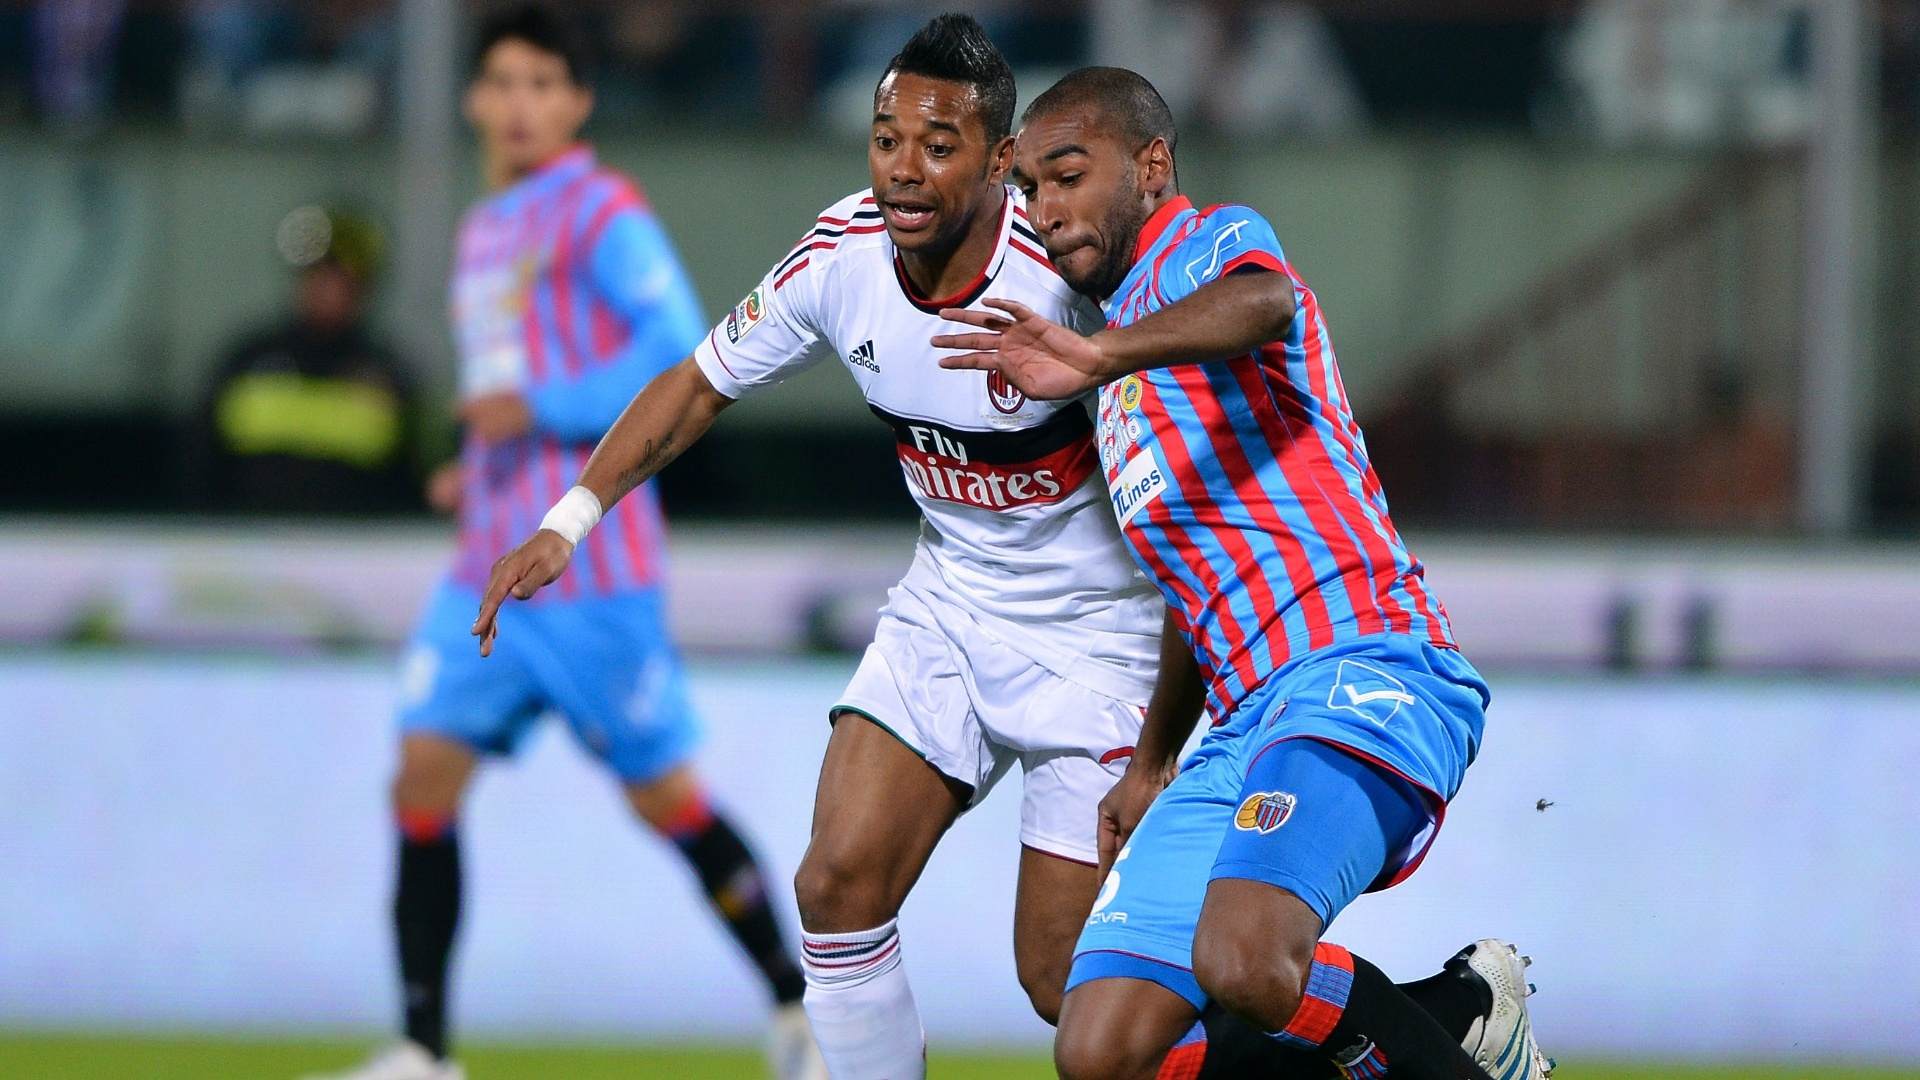 1.dez.2012 - Robinho, do Milan, disputa jogada com Alexis Rolin, do Catania, durante partida do Campeonato Italiano